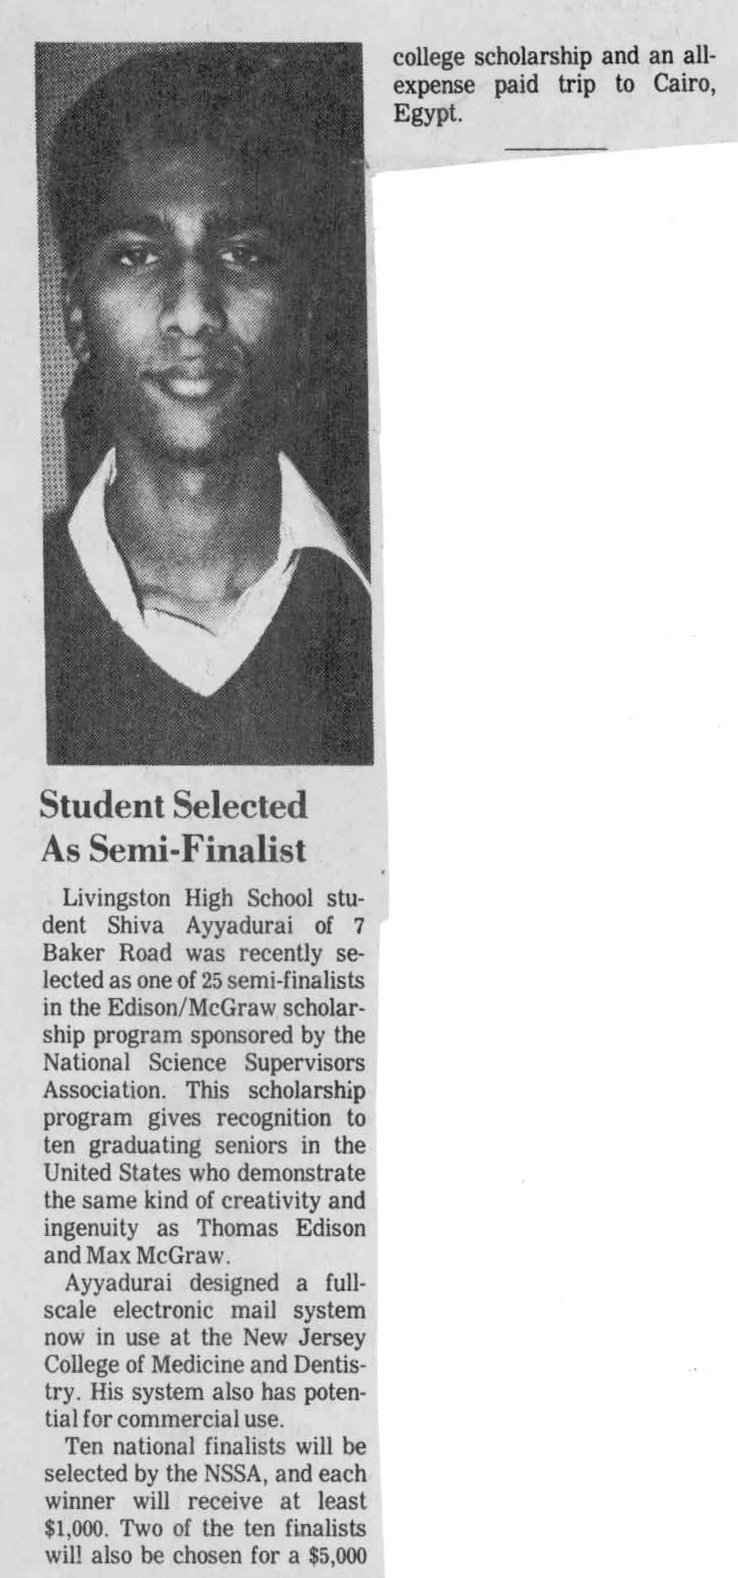 Student Selected As Semi-Finalist